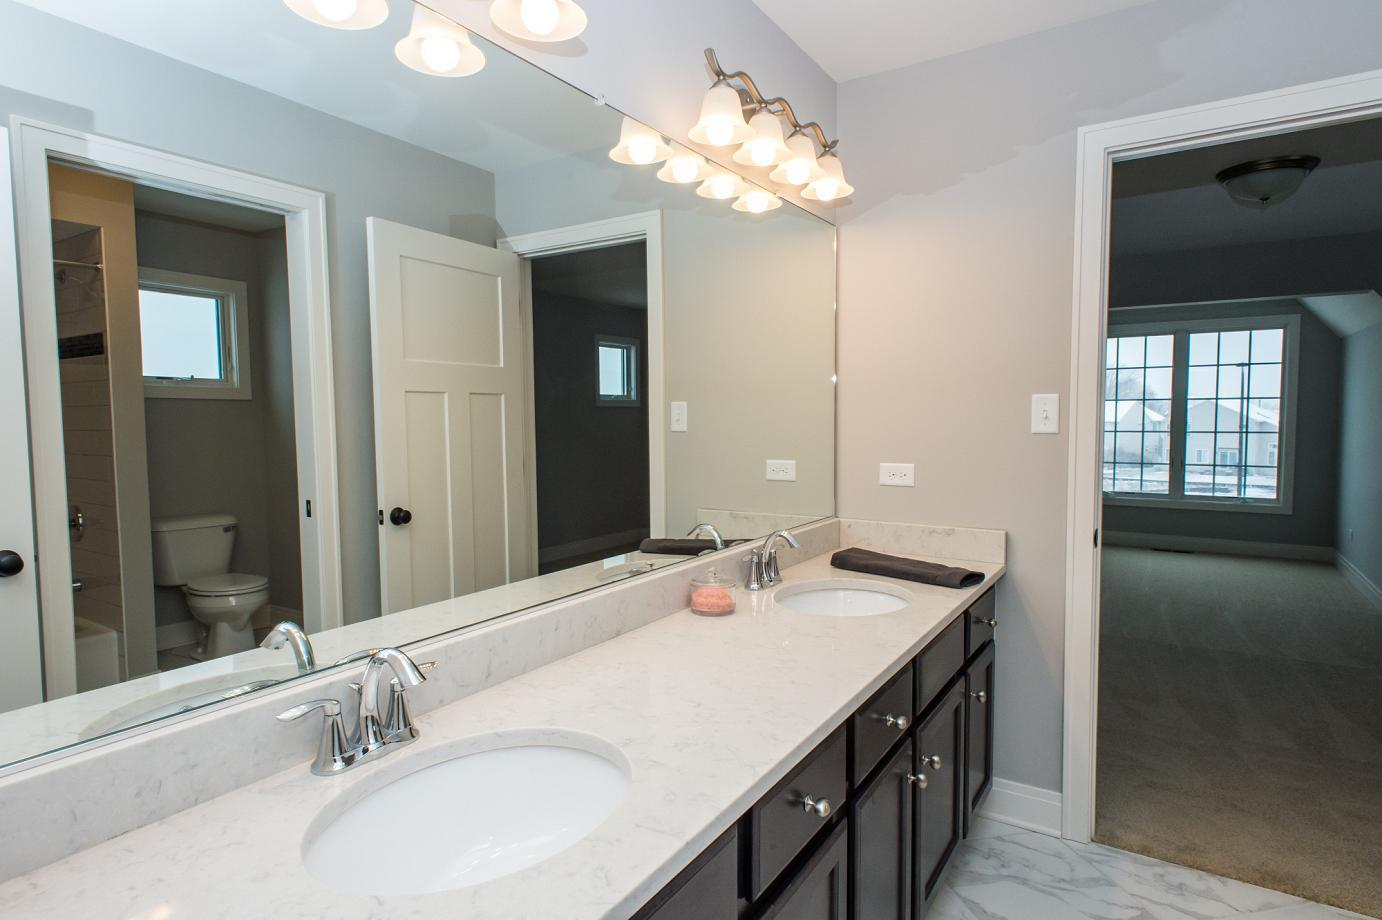 Bathroom featured in the Calysta By Gallagher and Henry in Chicago, IL